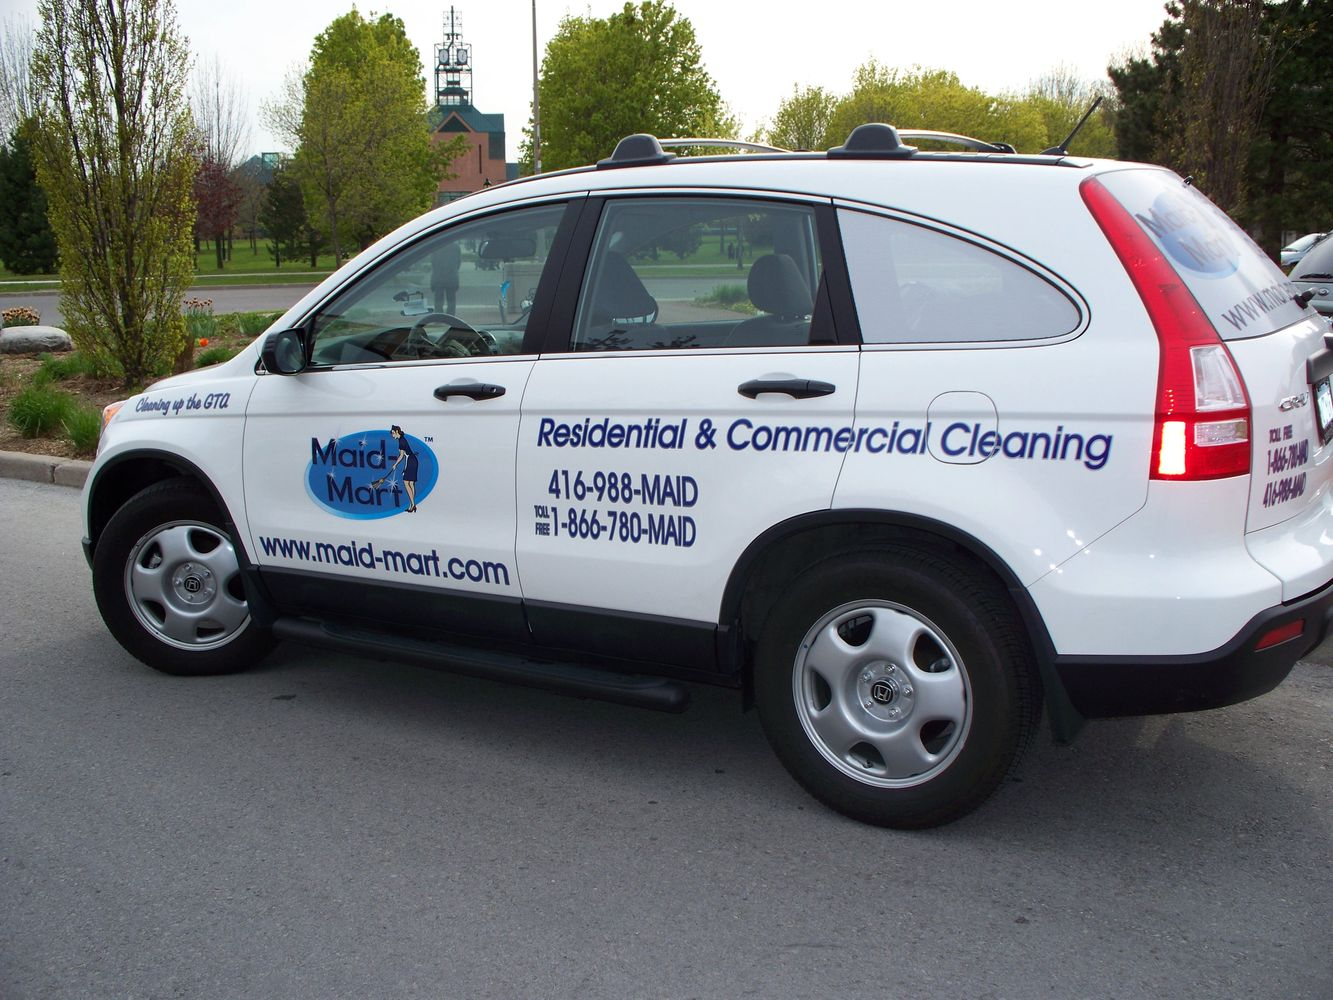 Maid Maid cleaning car for residential and commercial cleaning in the GTA.